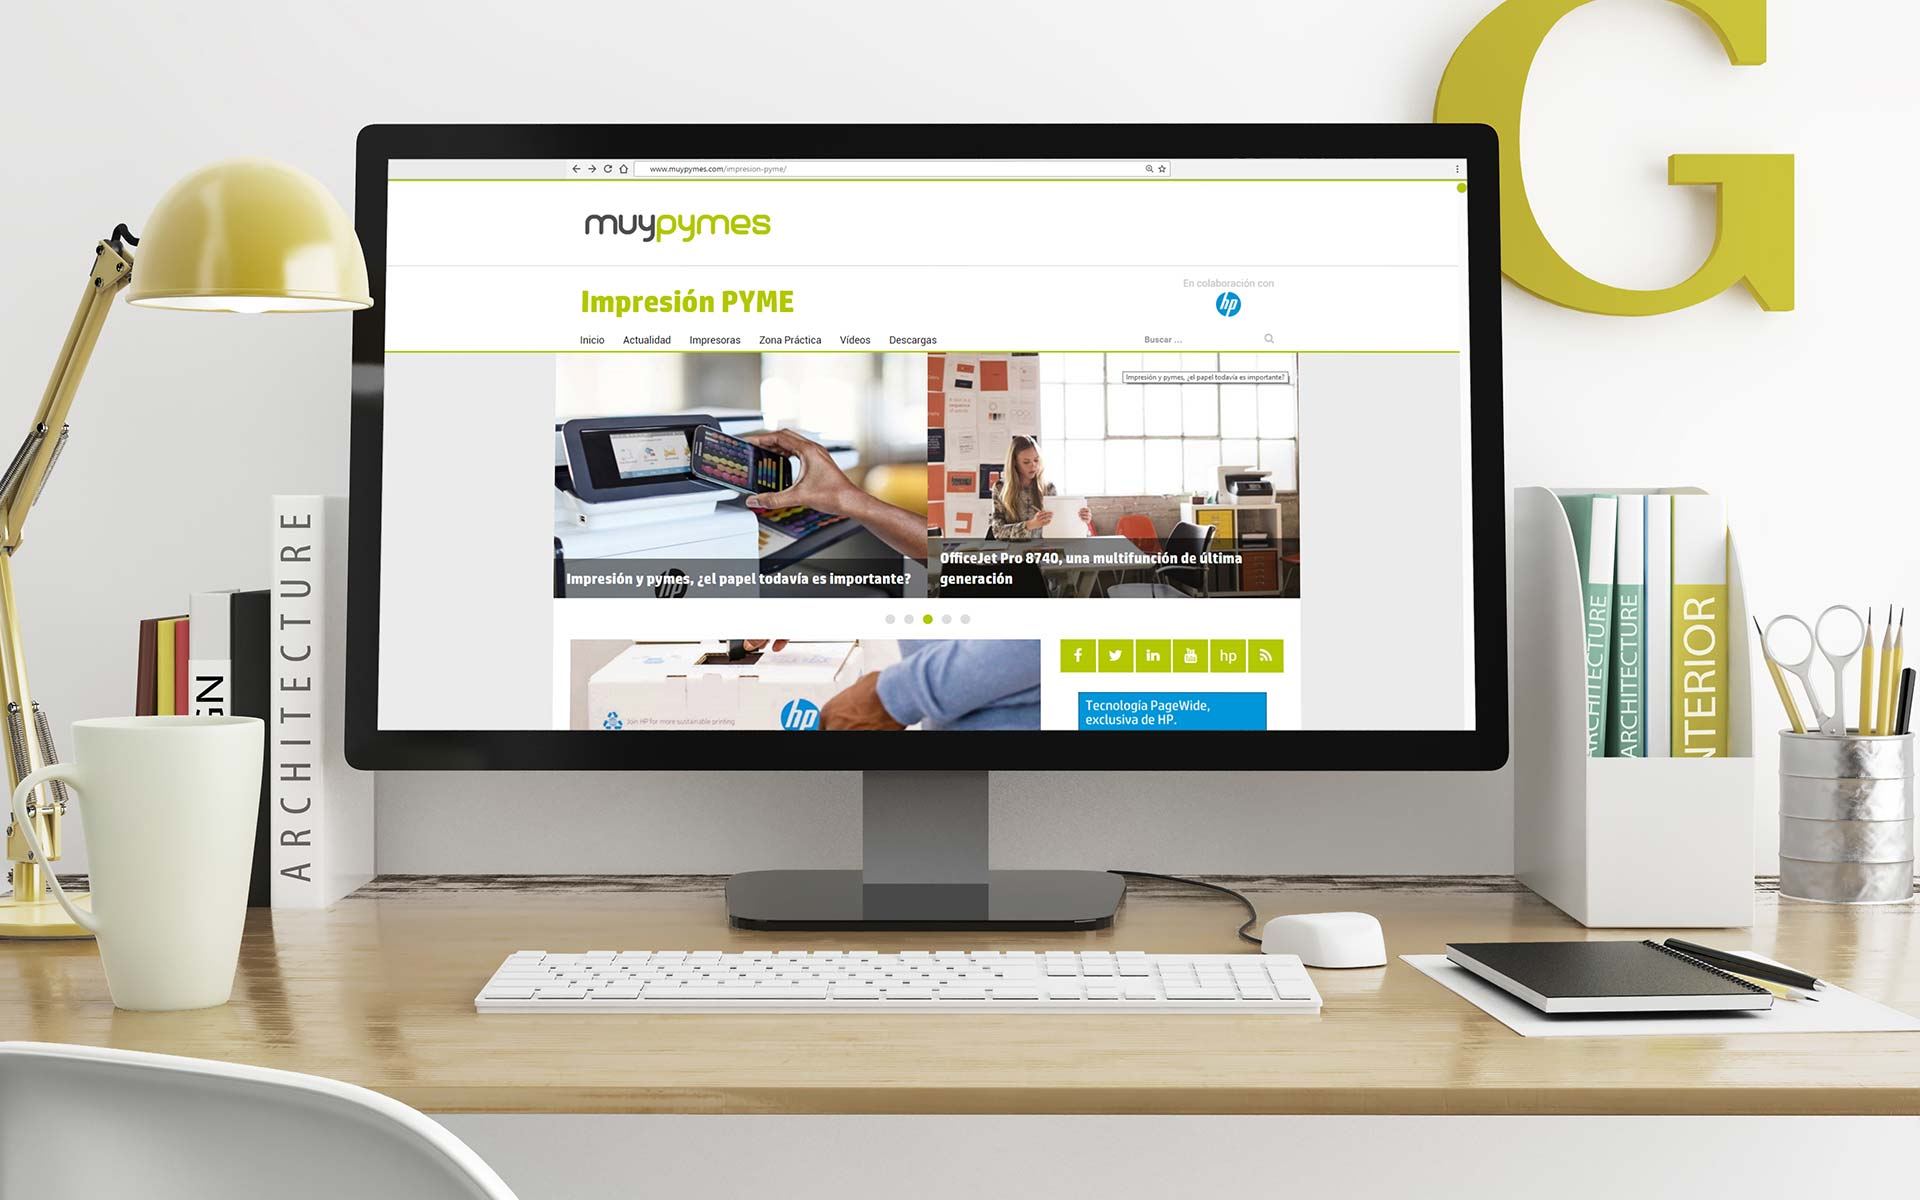 zona-hp-impresion-pyme-content-marketing-web-home-patrocinio